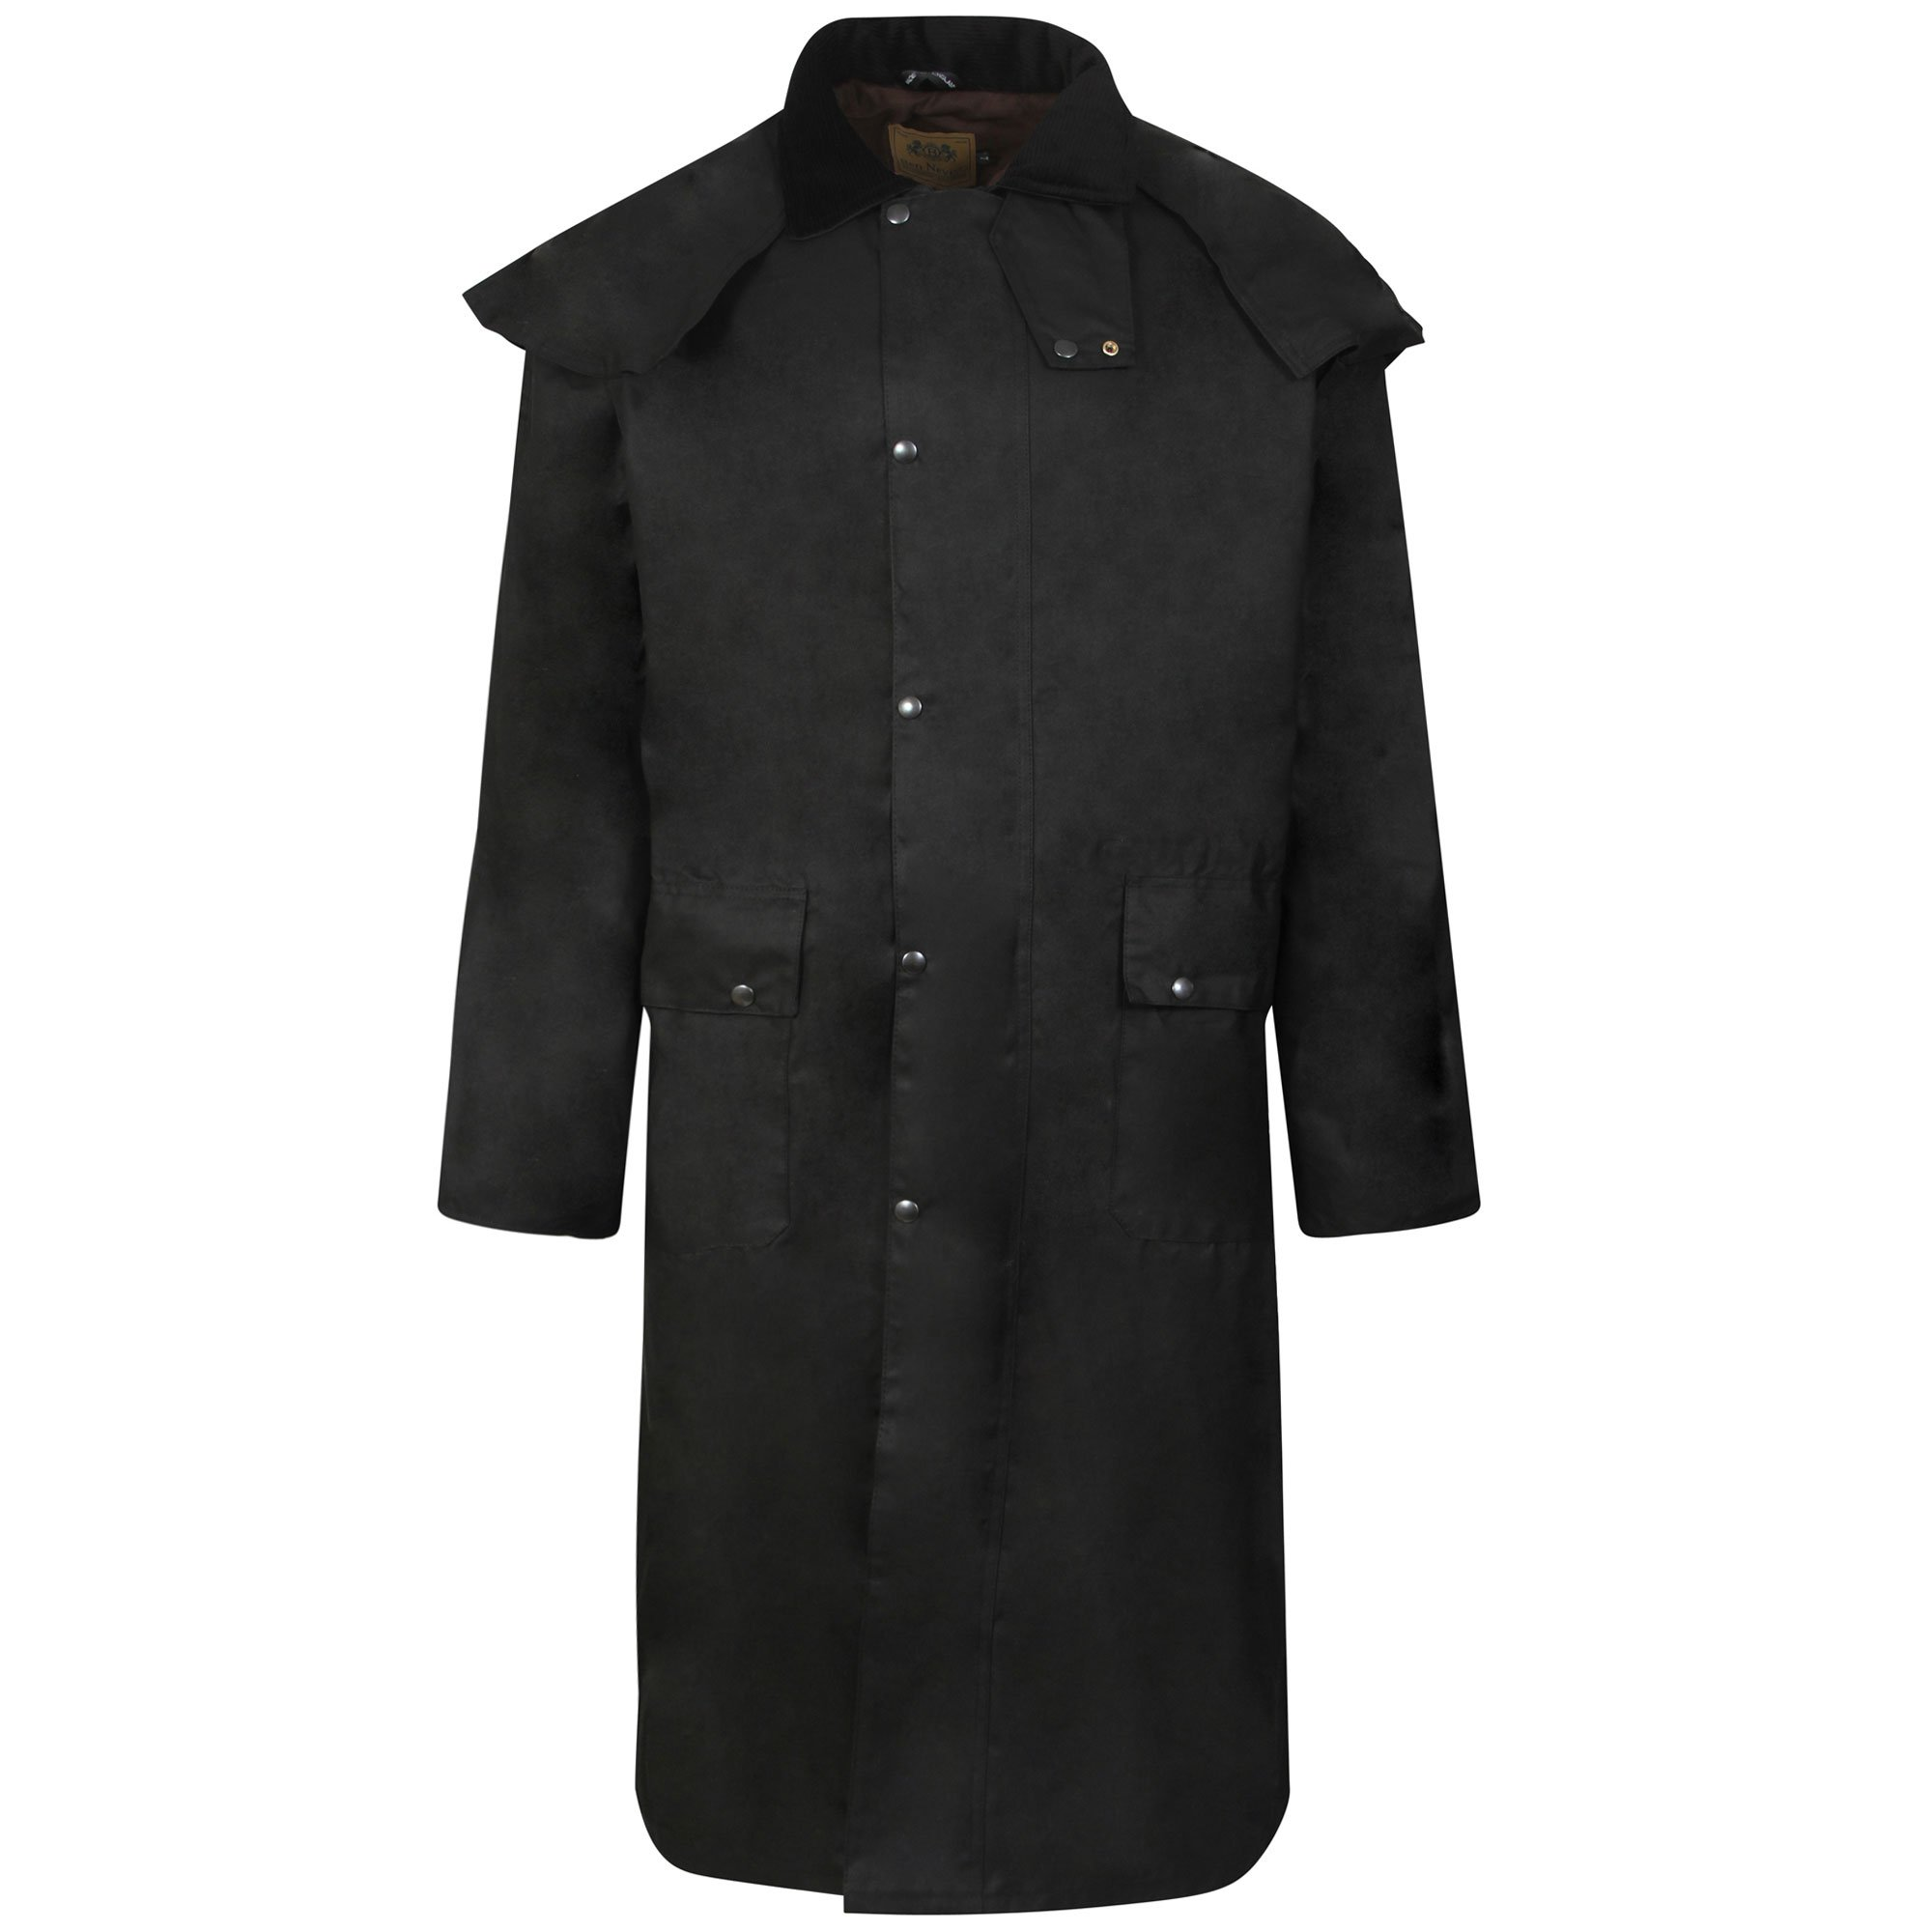 3283e3c4bc Fenside Country Clothing Long Wax Waxed Stockmans Riding Coat Jacket Unisex  Double Fold Way Waterproof product